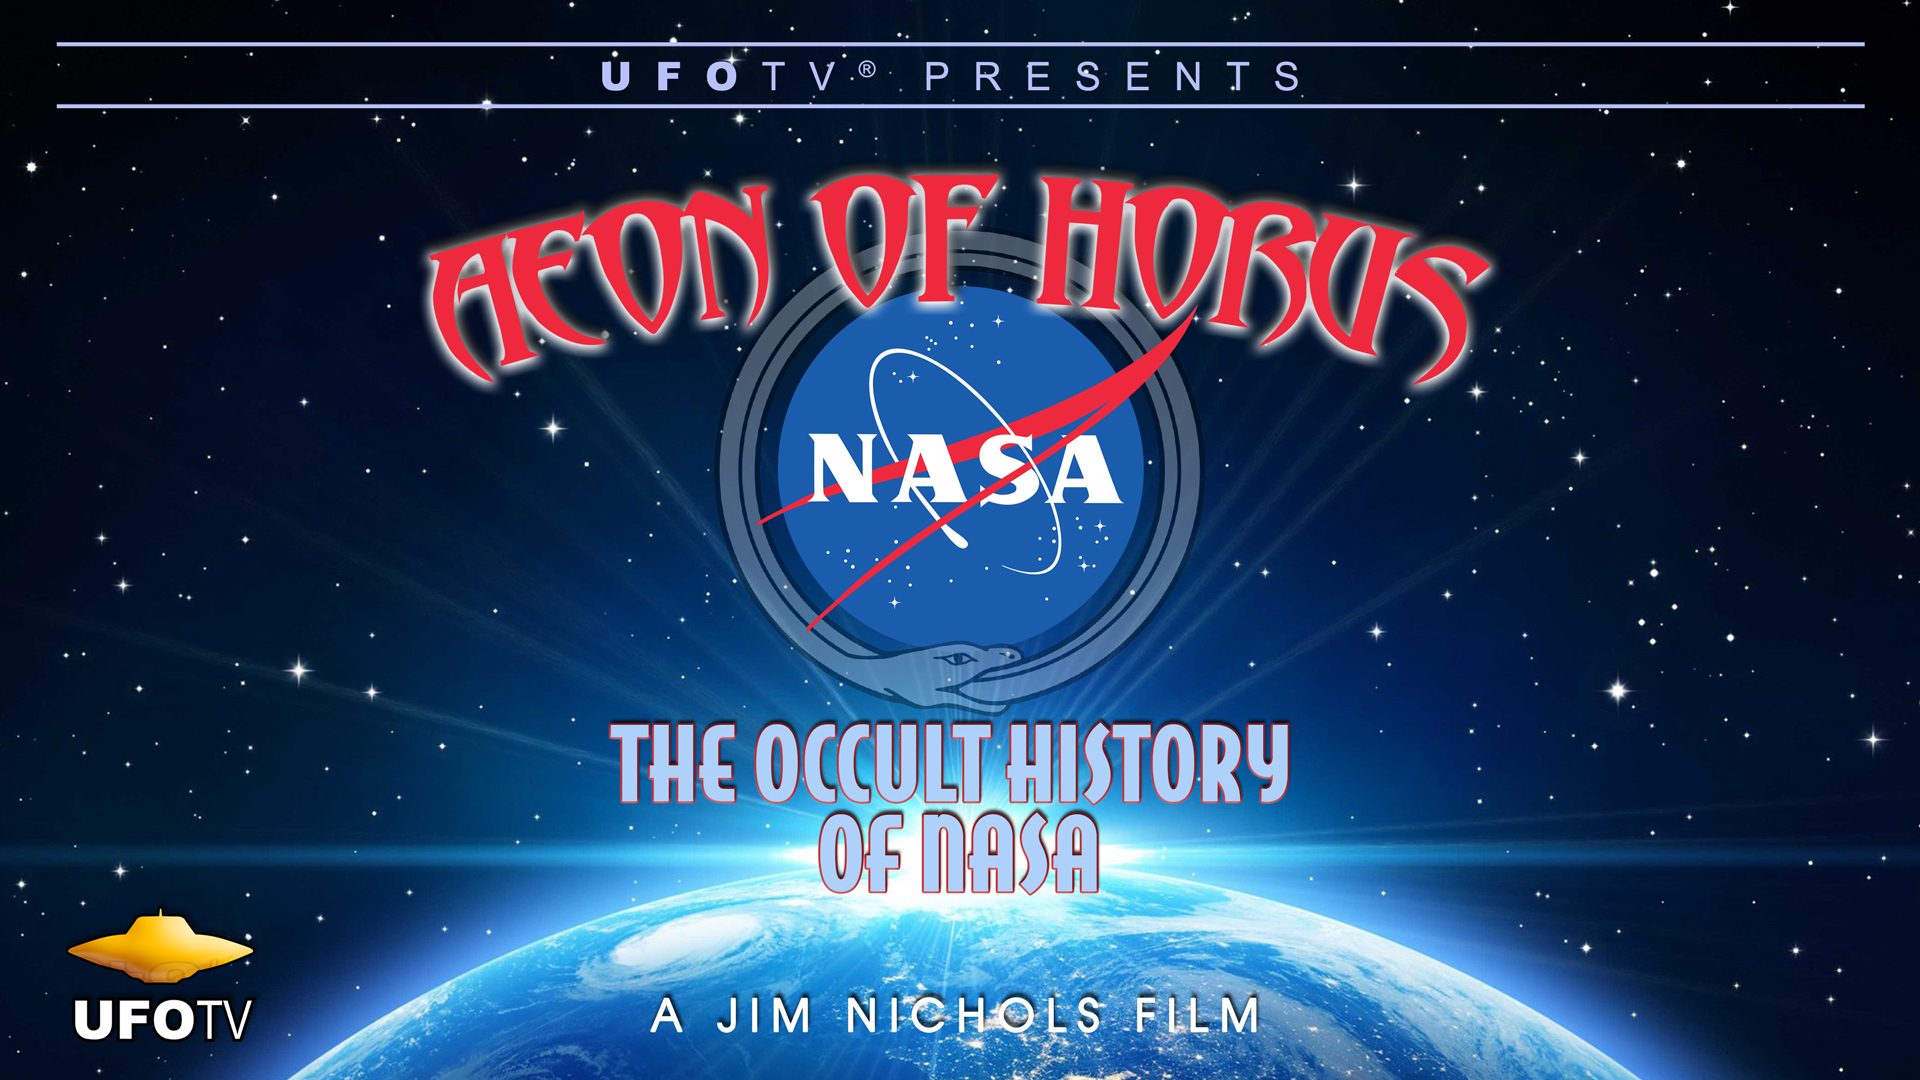 Aeon of Horus - The Occult History of NASA